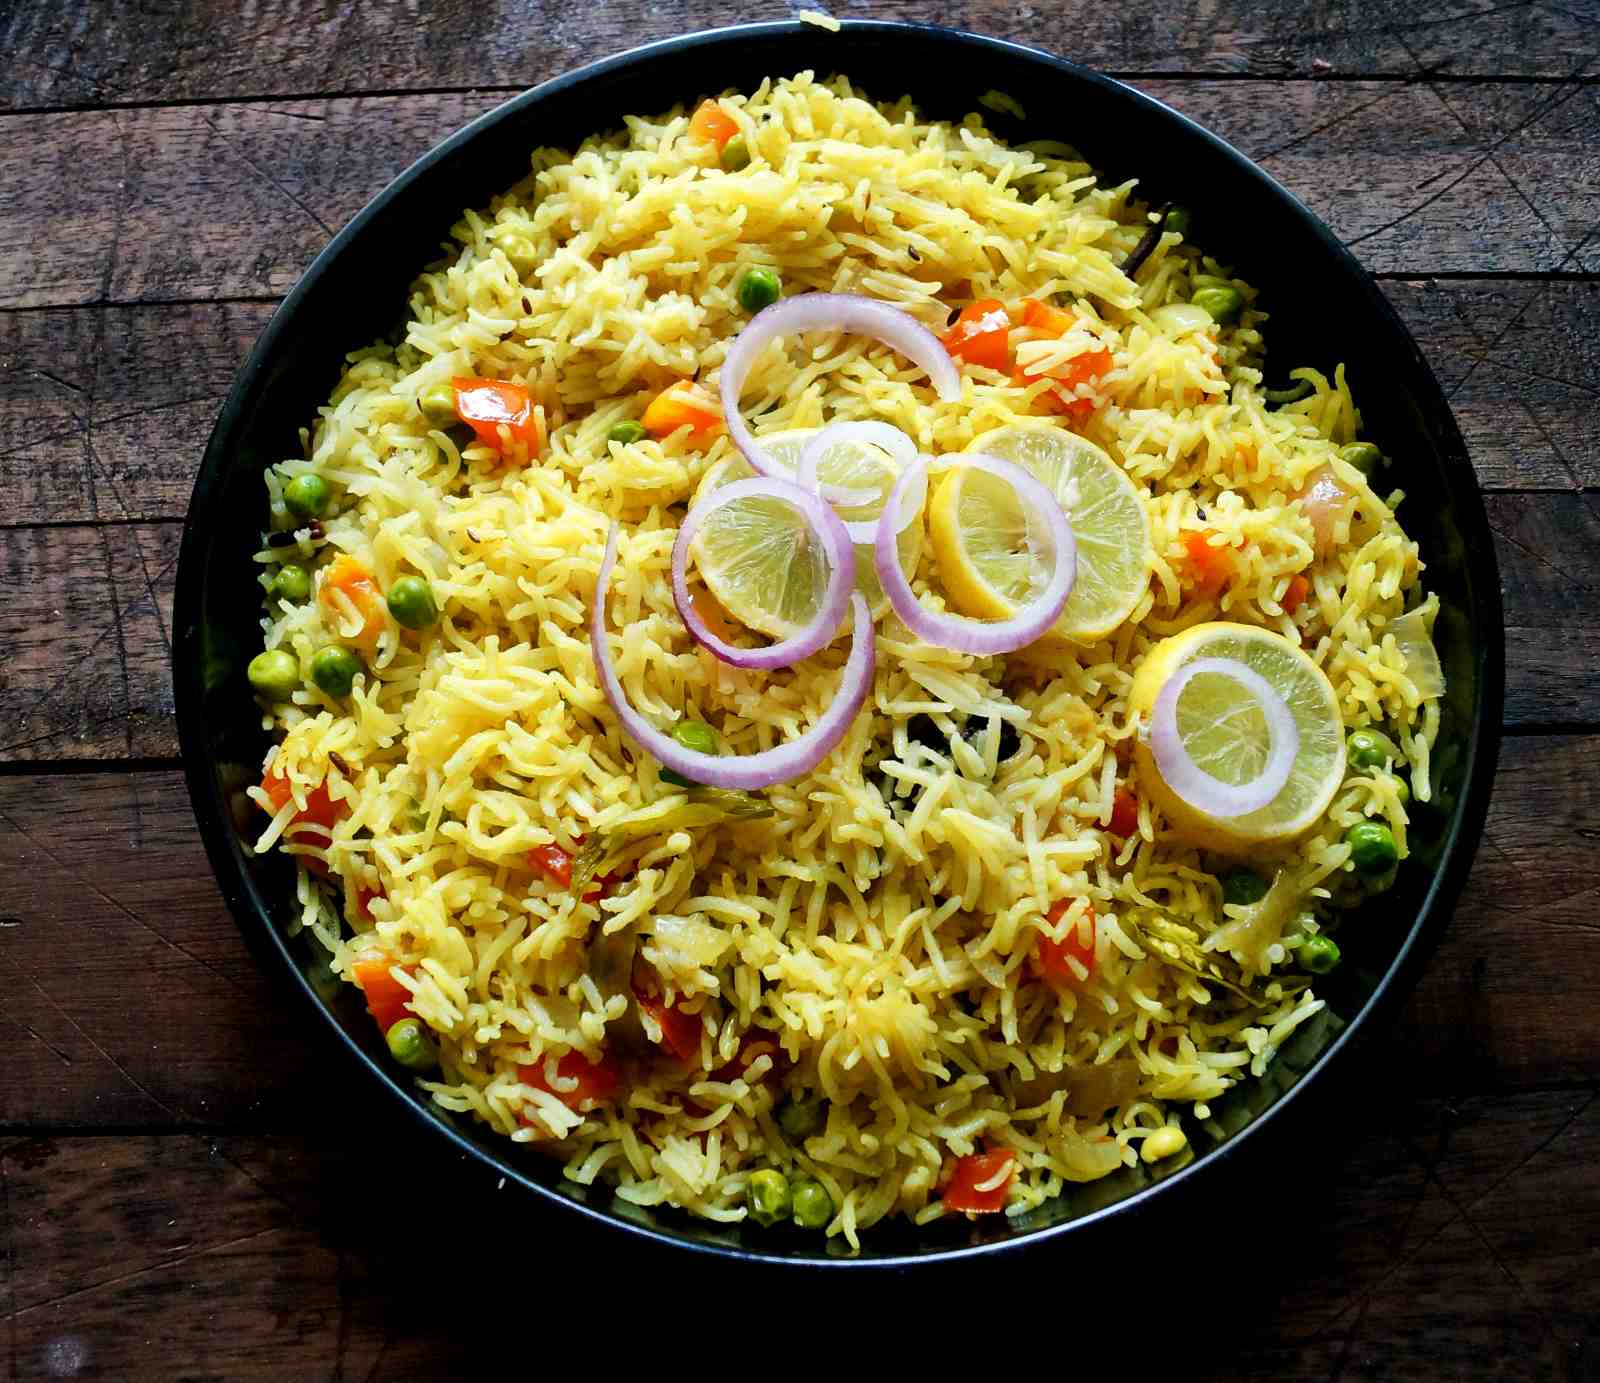 Nepalese veg pulao recipe by archanas kitchen nepalese veg pulao recipe forumfinder Choice Image